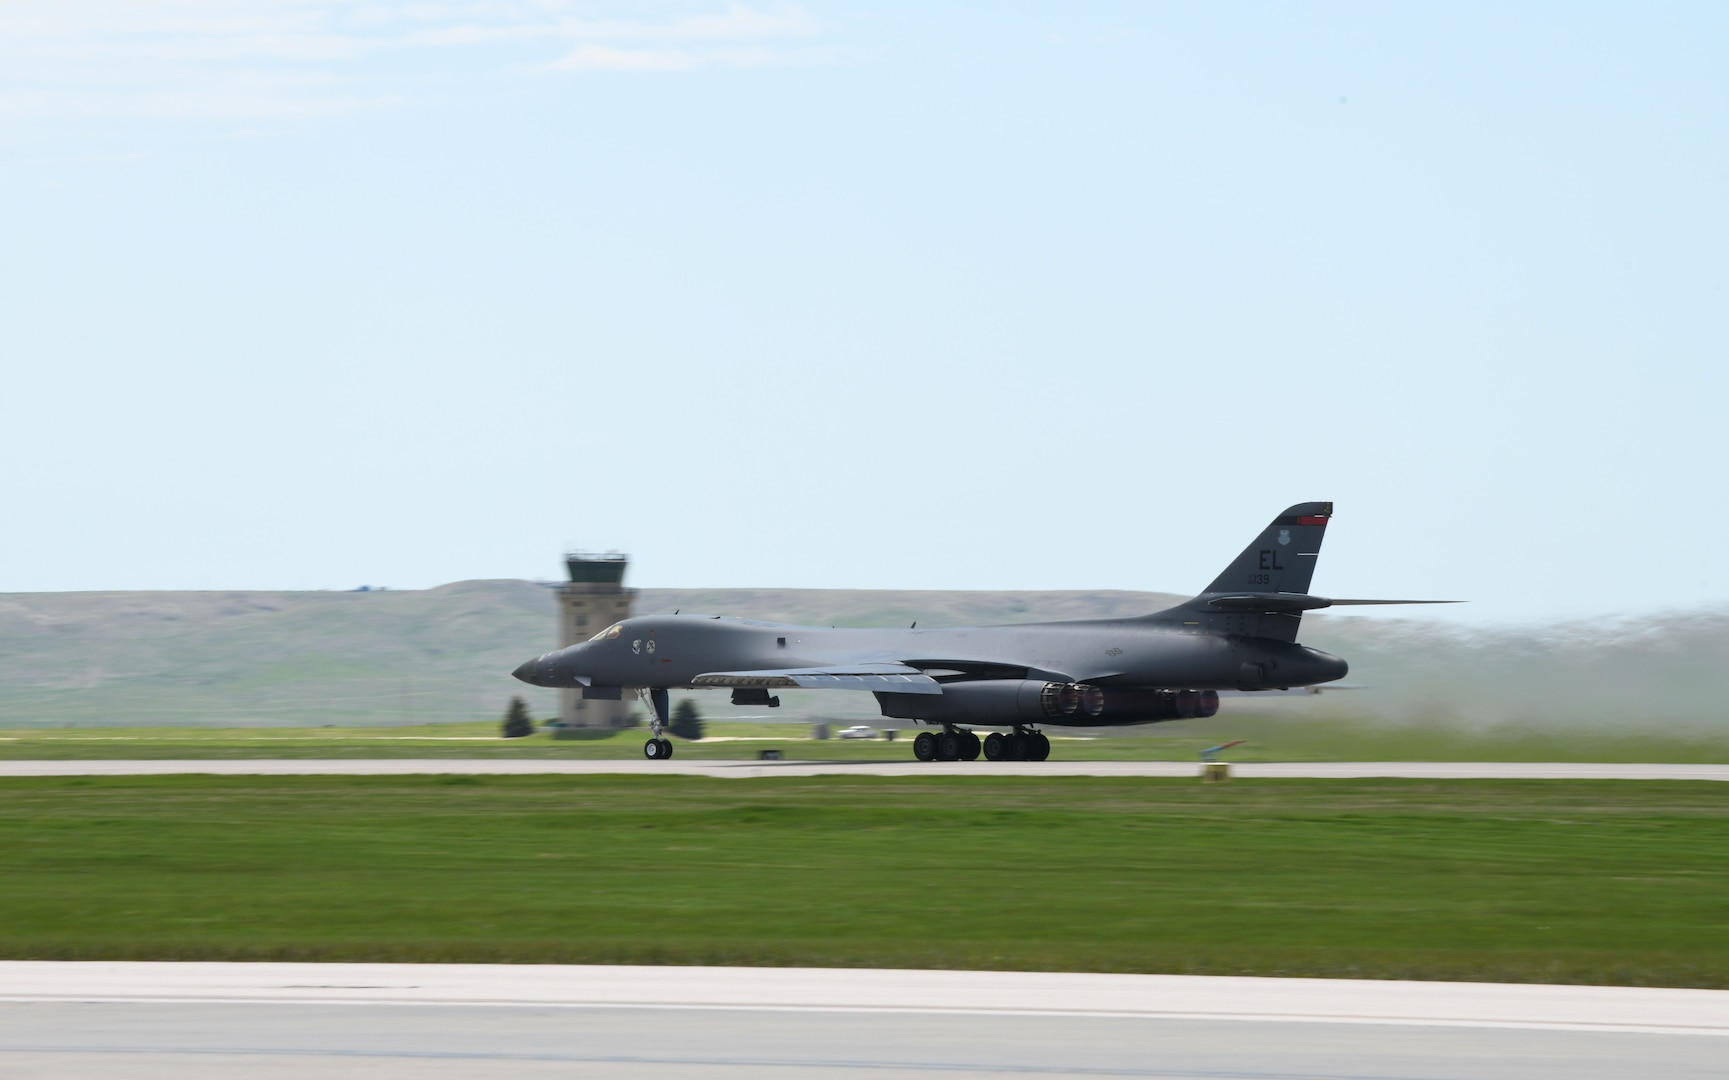 A 34th Bomb Squadron B-1B Lancer takes off from Ellsworth Air Force Base, S.D., May 19, 2020, for a long-range, long-duration Bomber Task Force mission to the U.S. European Command area of responsibility. BTF missions increase aircrew familiarity with operations in different geographic combatant command areas of operations as well as allied-nation interoperability. (U.S. Air Force photo by Airman 1st Class Christina Bennett)